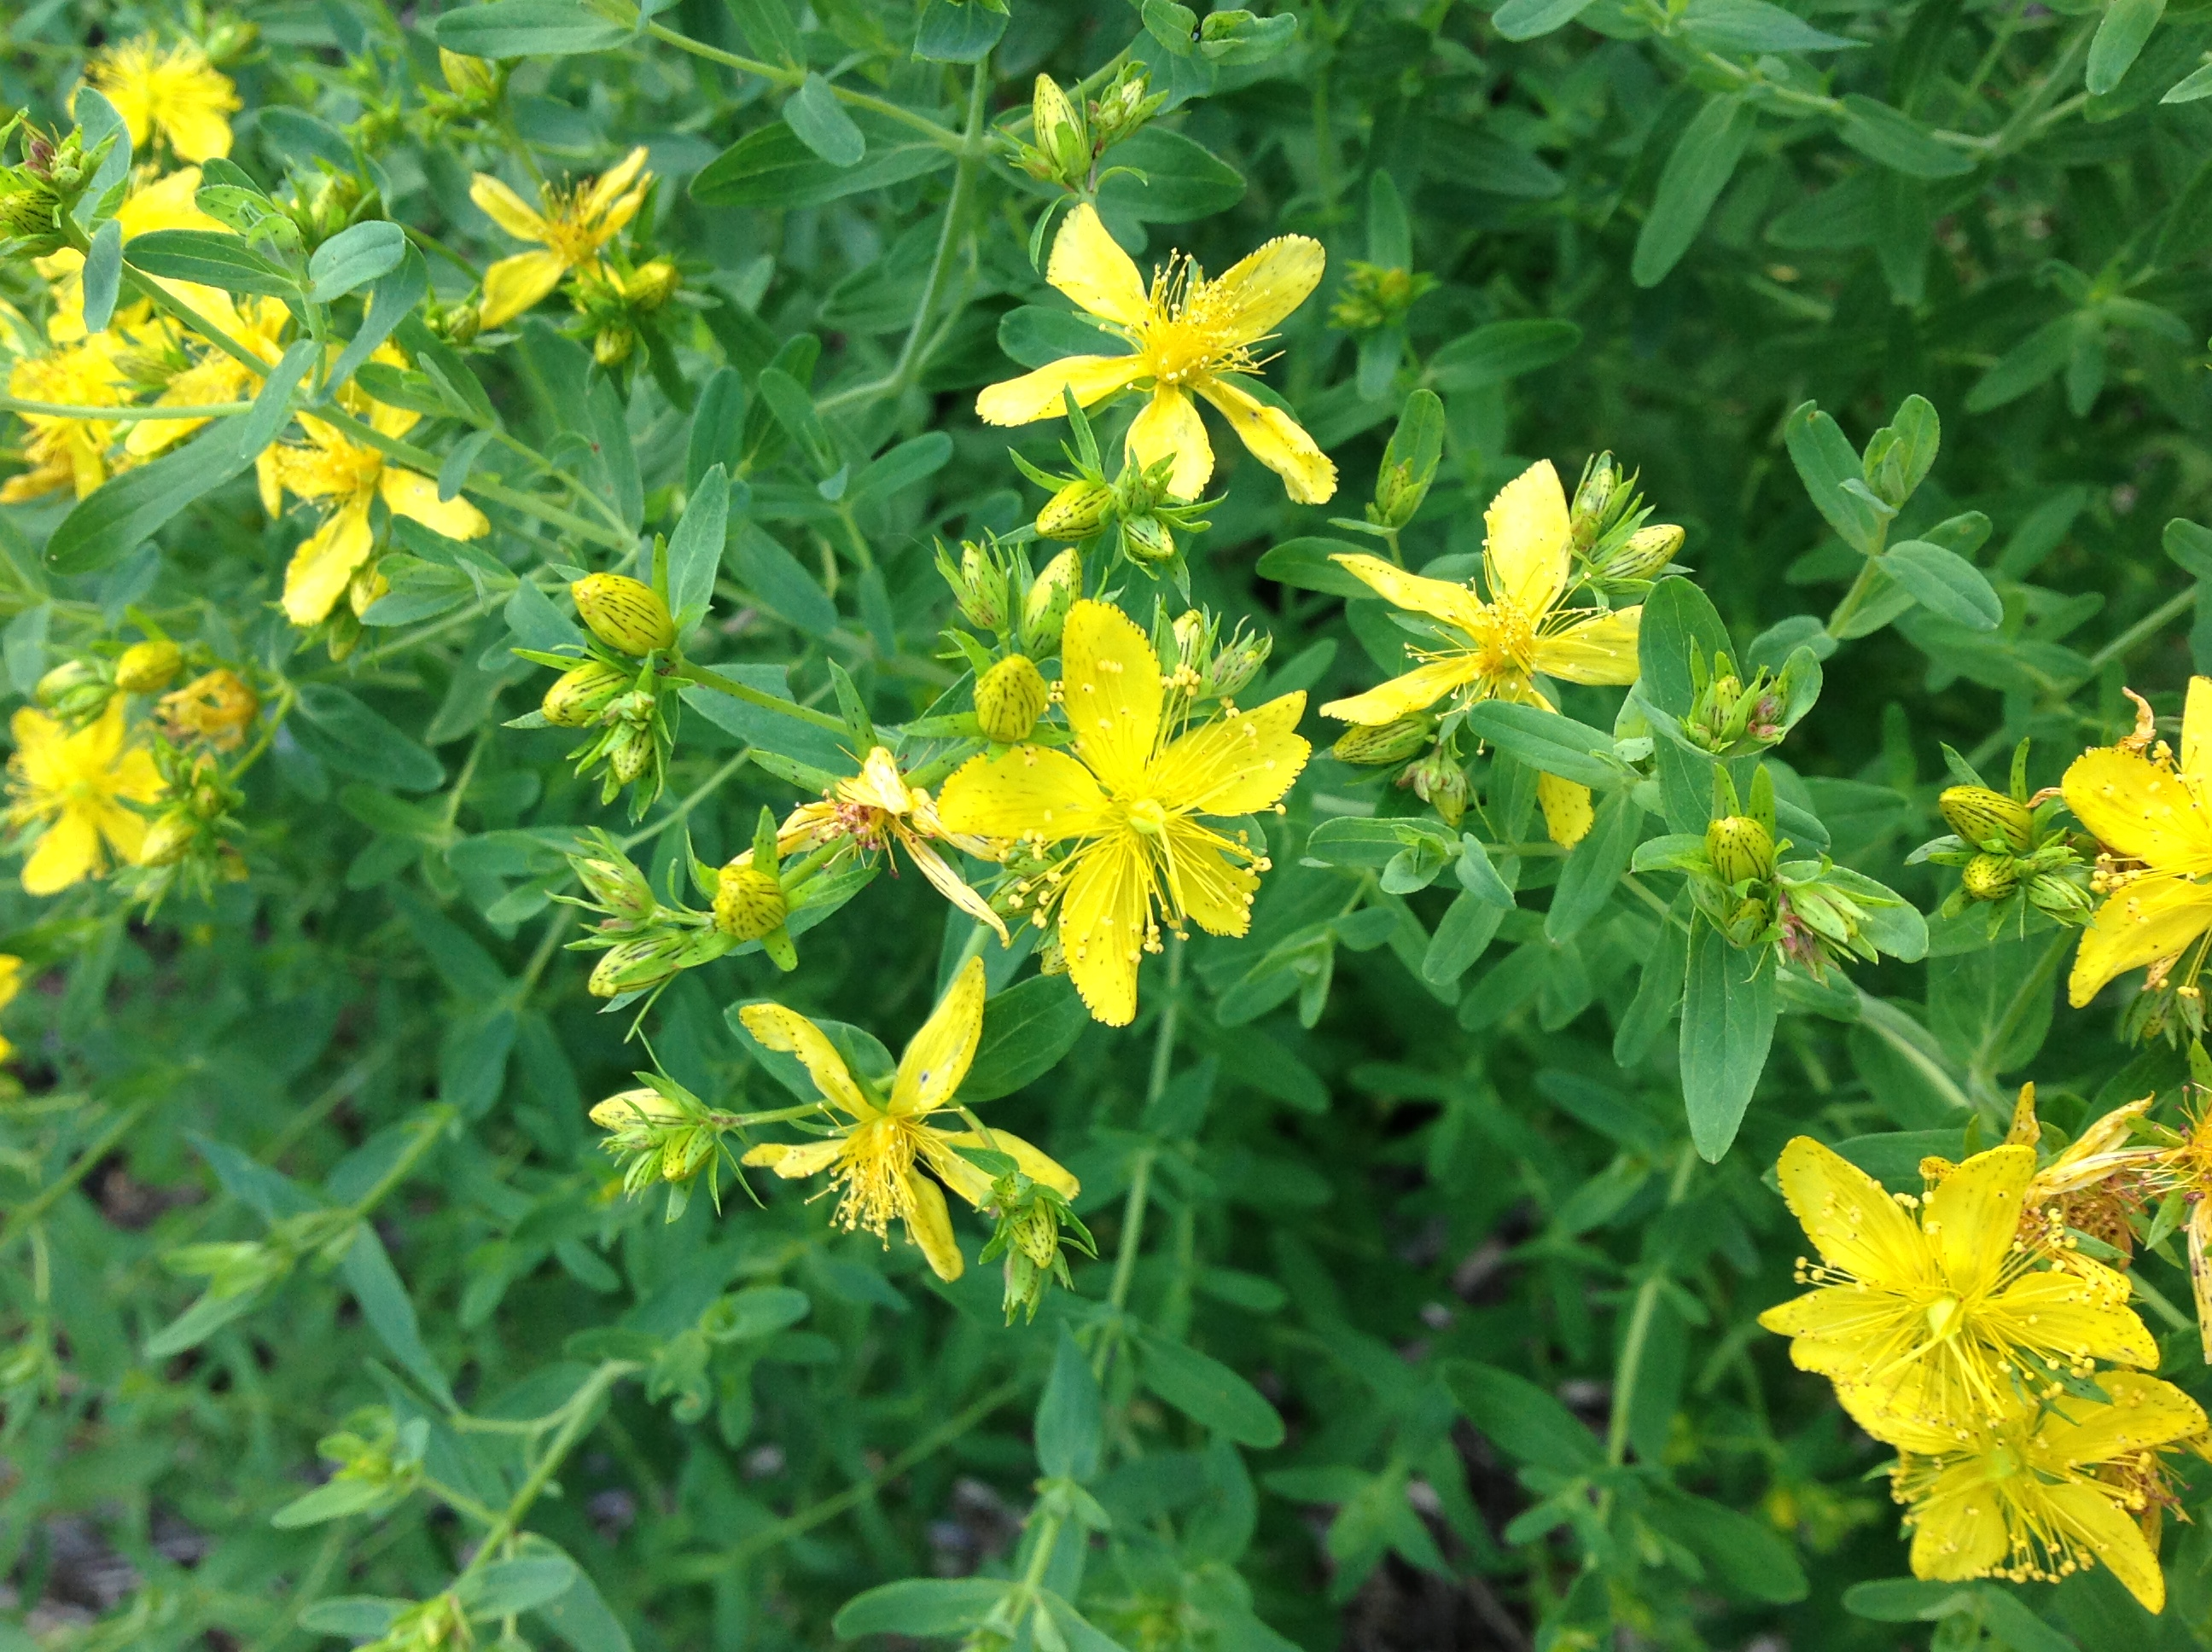 St. Johns wort perforated